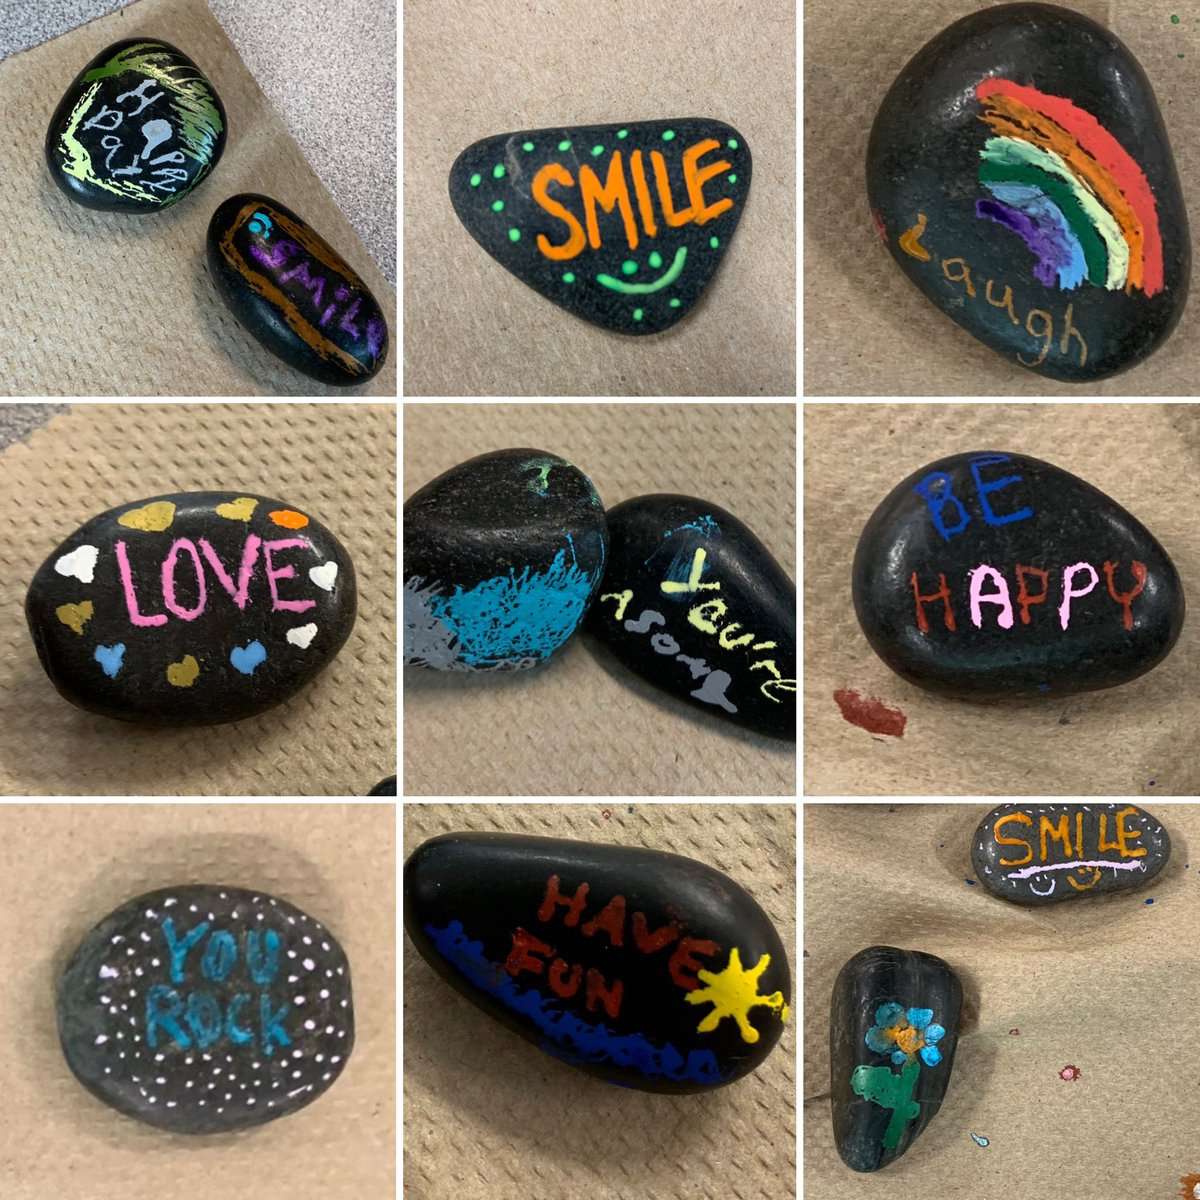 YOU ROCK! Students painted kindness rocks to hide around the <a target='_blank' href='http://twitter.com/AbingdonGIFT'>@AbingdonGIFT</a> campus for others to find (and keep)! Hope you have a great summer! <a target='_blank' href='http://search.twitter.com/search?q=ApsisAwesome'><a target='_blank' href='https://twitter.com/hashtag/ApsisAwesome?src=hash'>#ApsisAwesome</a></a> <a target='_blank' href='http://search.twitter.com/search?q=kindessmatters'><a target='_blank' href='https://twitter.com/hashtag/kindessmatters?src=hash'>#kindessmatters</a></a> <a target='_blank' href='http://search.twitter.com/search?q=readyforsummer'><a target='_blank' href='https://twitter.com/hashtag/readyforsummer?src=hash'>#readyforsummer</a></a> <a target='_blank' href='http://twitter.com/MsMuscarellaArt'>@MsMuscarellaArt</a> <a target='_blank' href='http://twitter.com/sb_cares'>@sb_cares</a> <a target='_blank' href='http://twitter.com/AbingdonCares'>@AbingdonCares</a> <a target='_blank' href='https://t.co/VFG4YjgmpL'>https://t.co/VFG4YjgmpL</a>